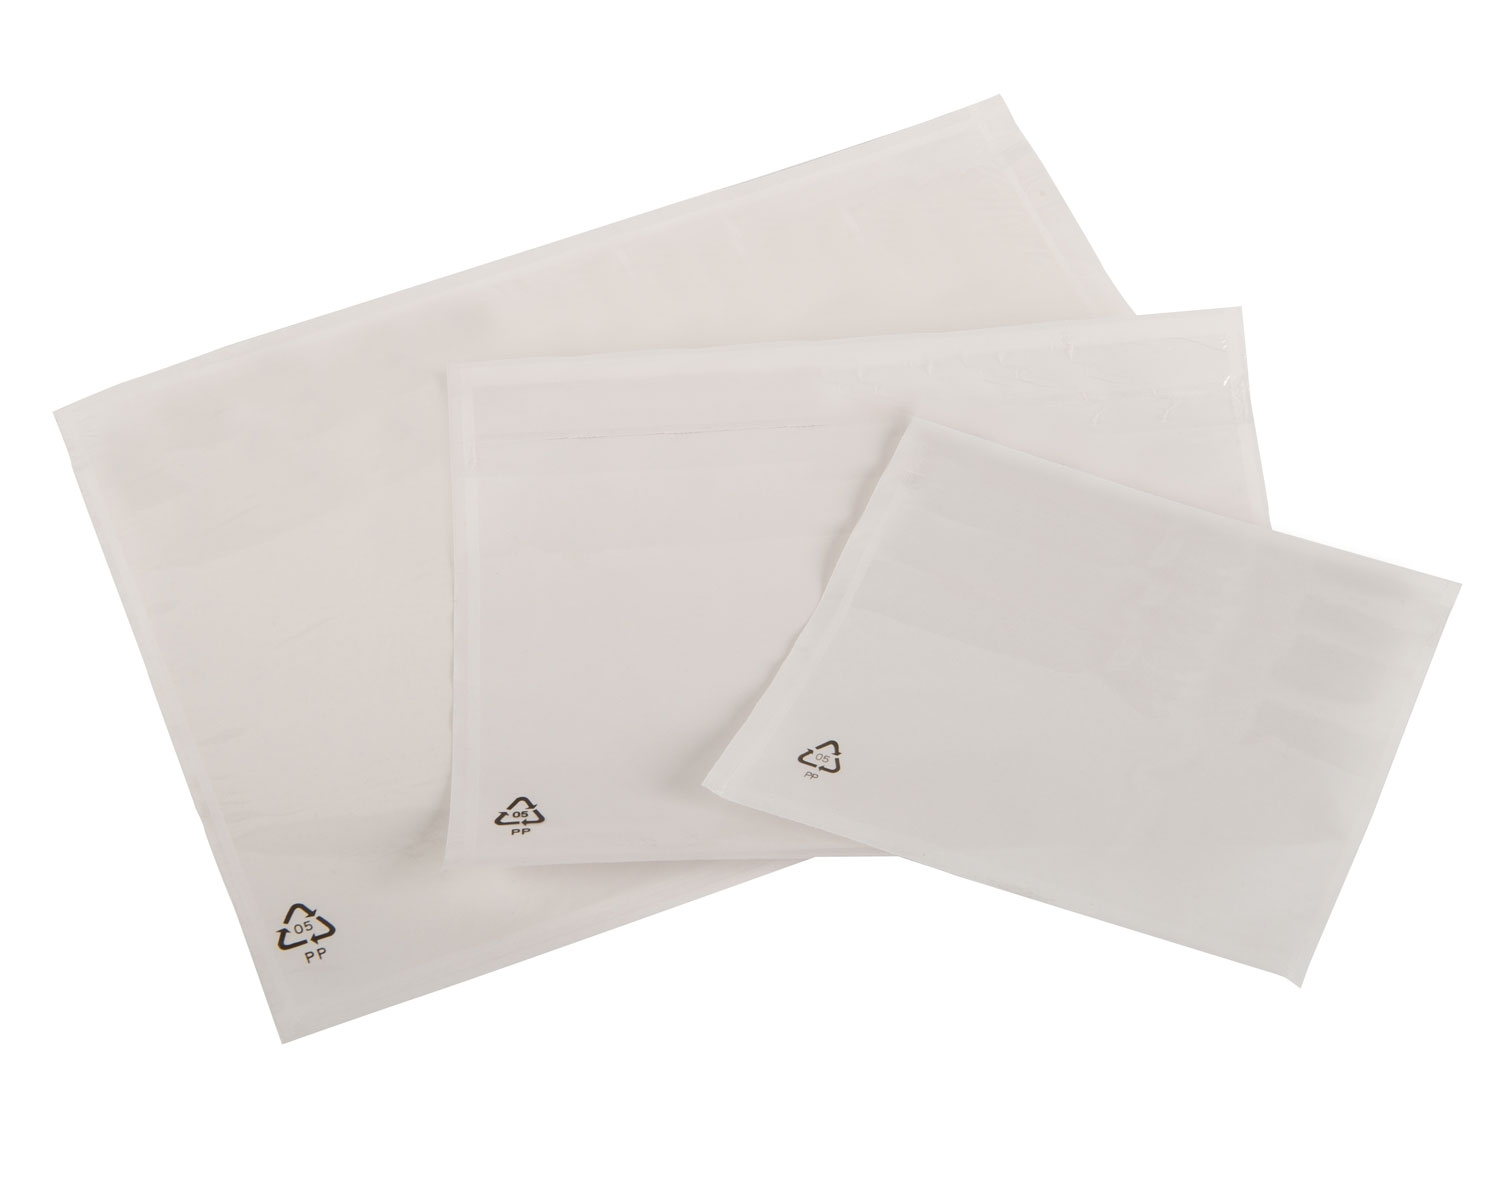 DIN-LONG Document Envelopes - Plain